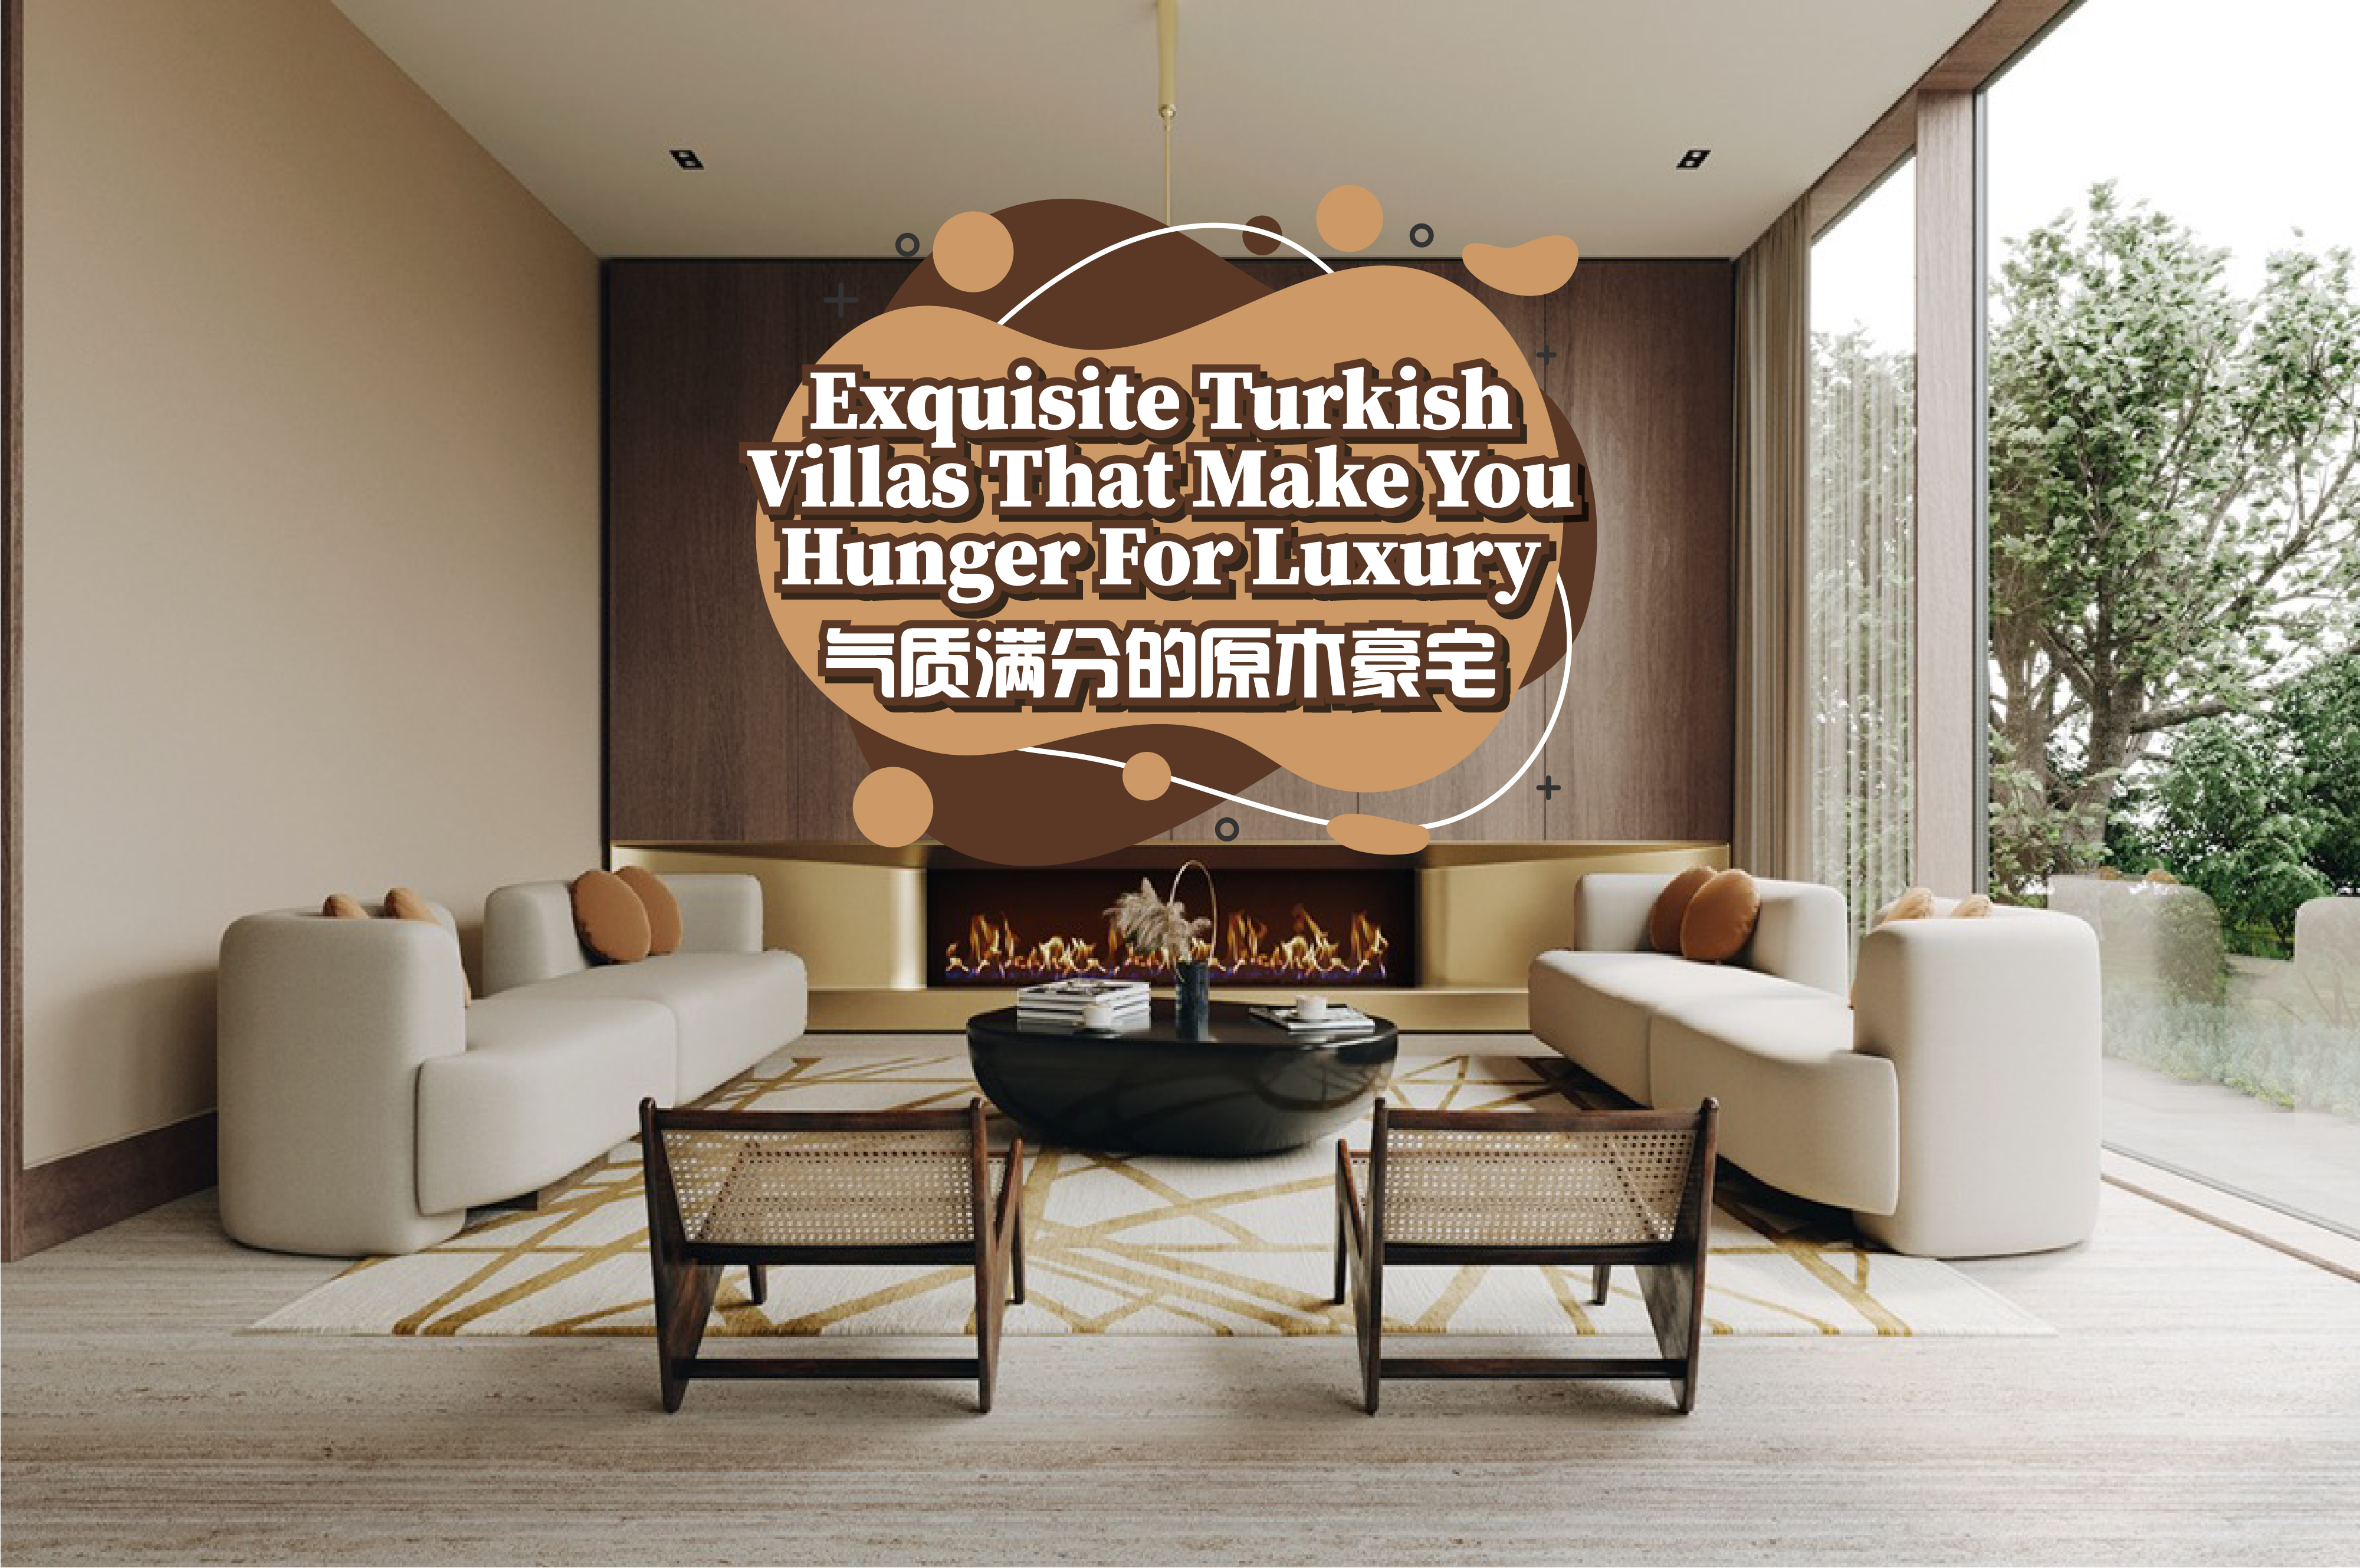 Exquisite Turkish Villas That Make You Hunger For Luxury 气质满分的原木豪宅